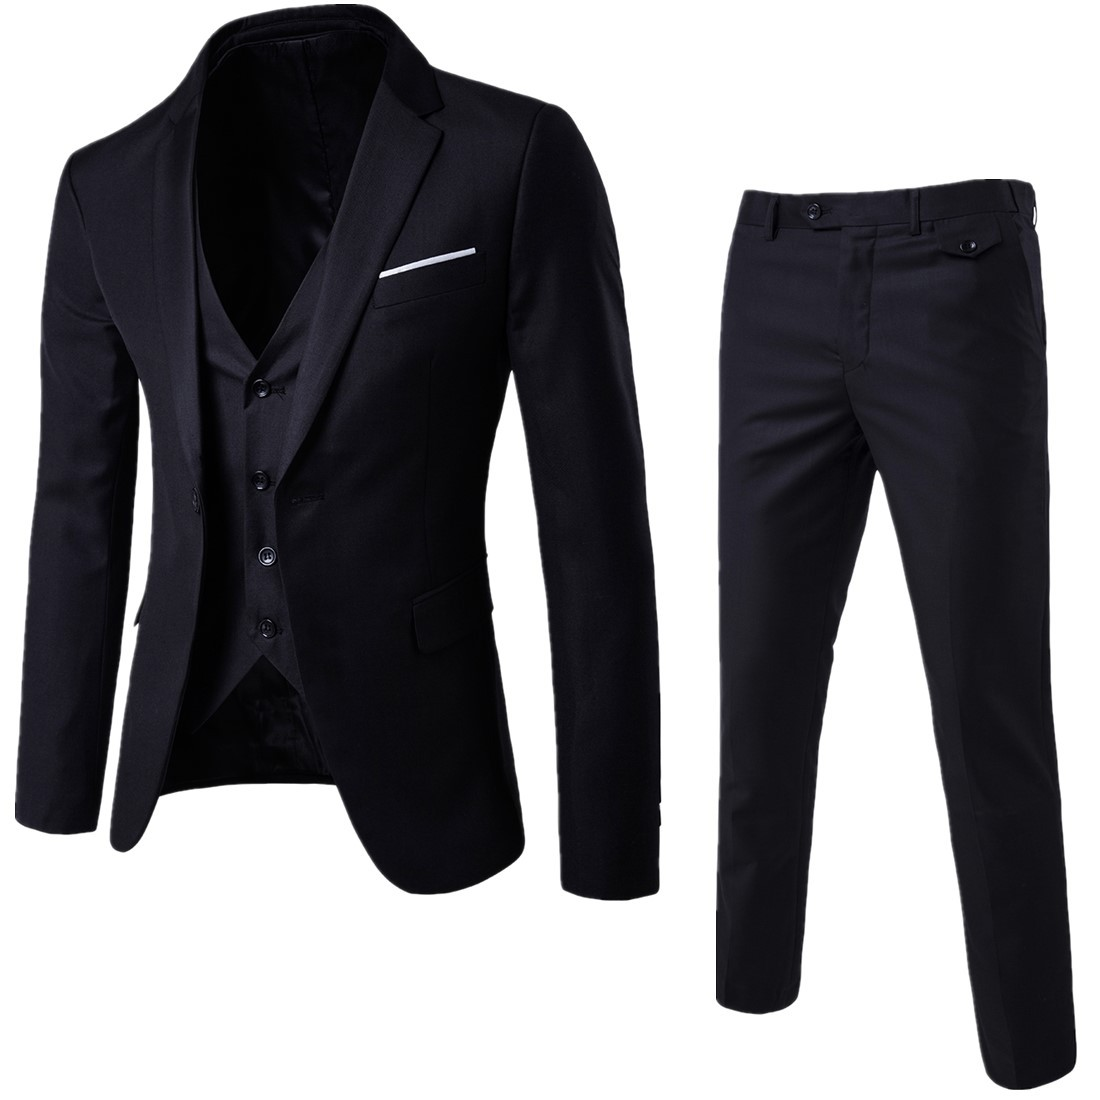 Suit MEN'S Suit Formal Wear Wear Men Going To Work Youth College Student Handsome Korean-style Slim Fit Two Piece Set Suit